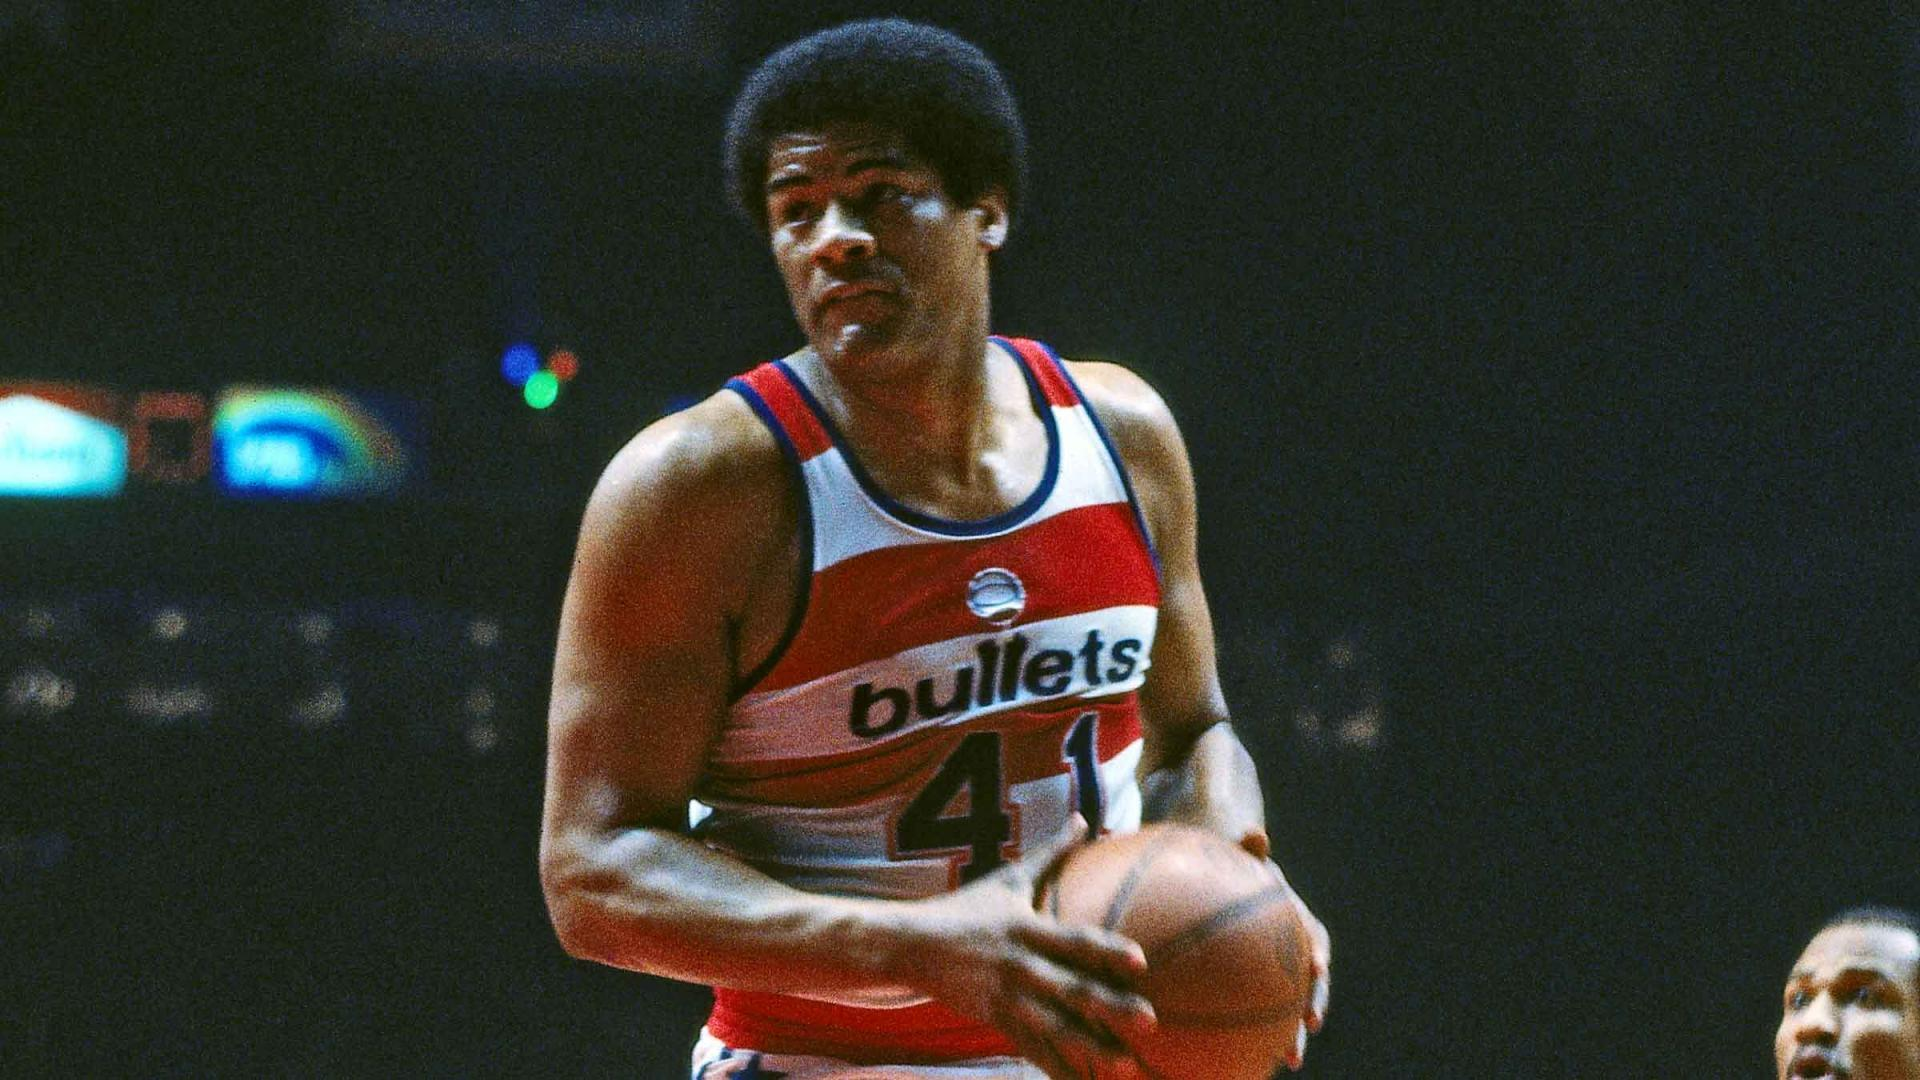 Legendary Moments In NBA History: Unseld wins MVP, Rookie of the Year in 1969